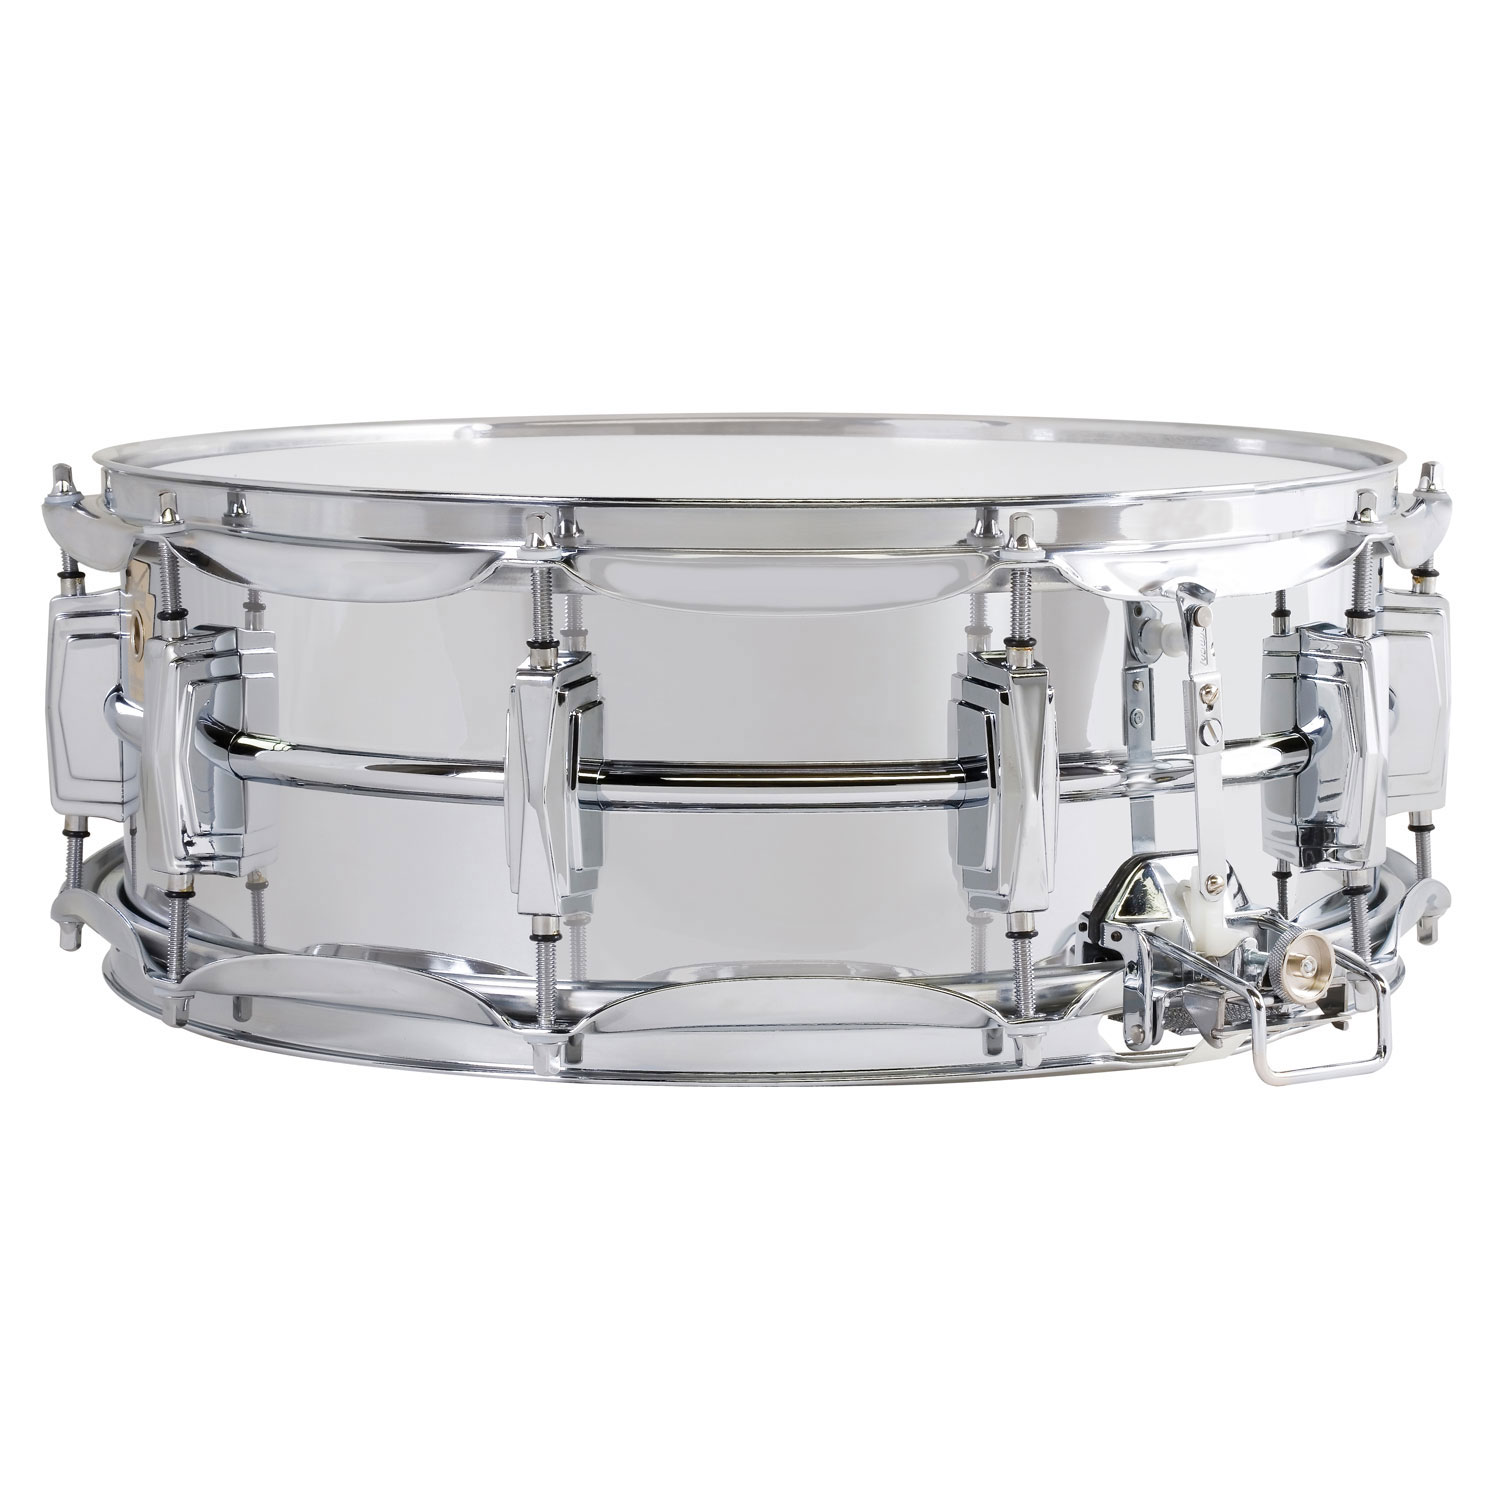 "Ludwig 5"" x 14"" Aluminum Snare Drum with Super-Sensitive Snares"